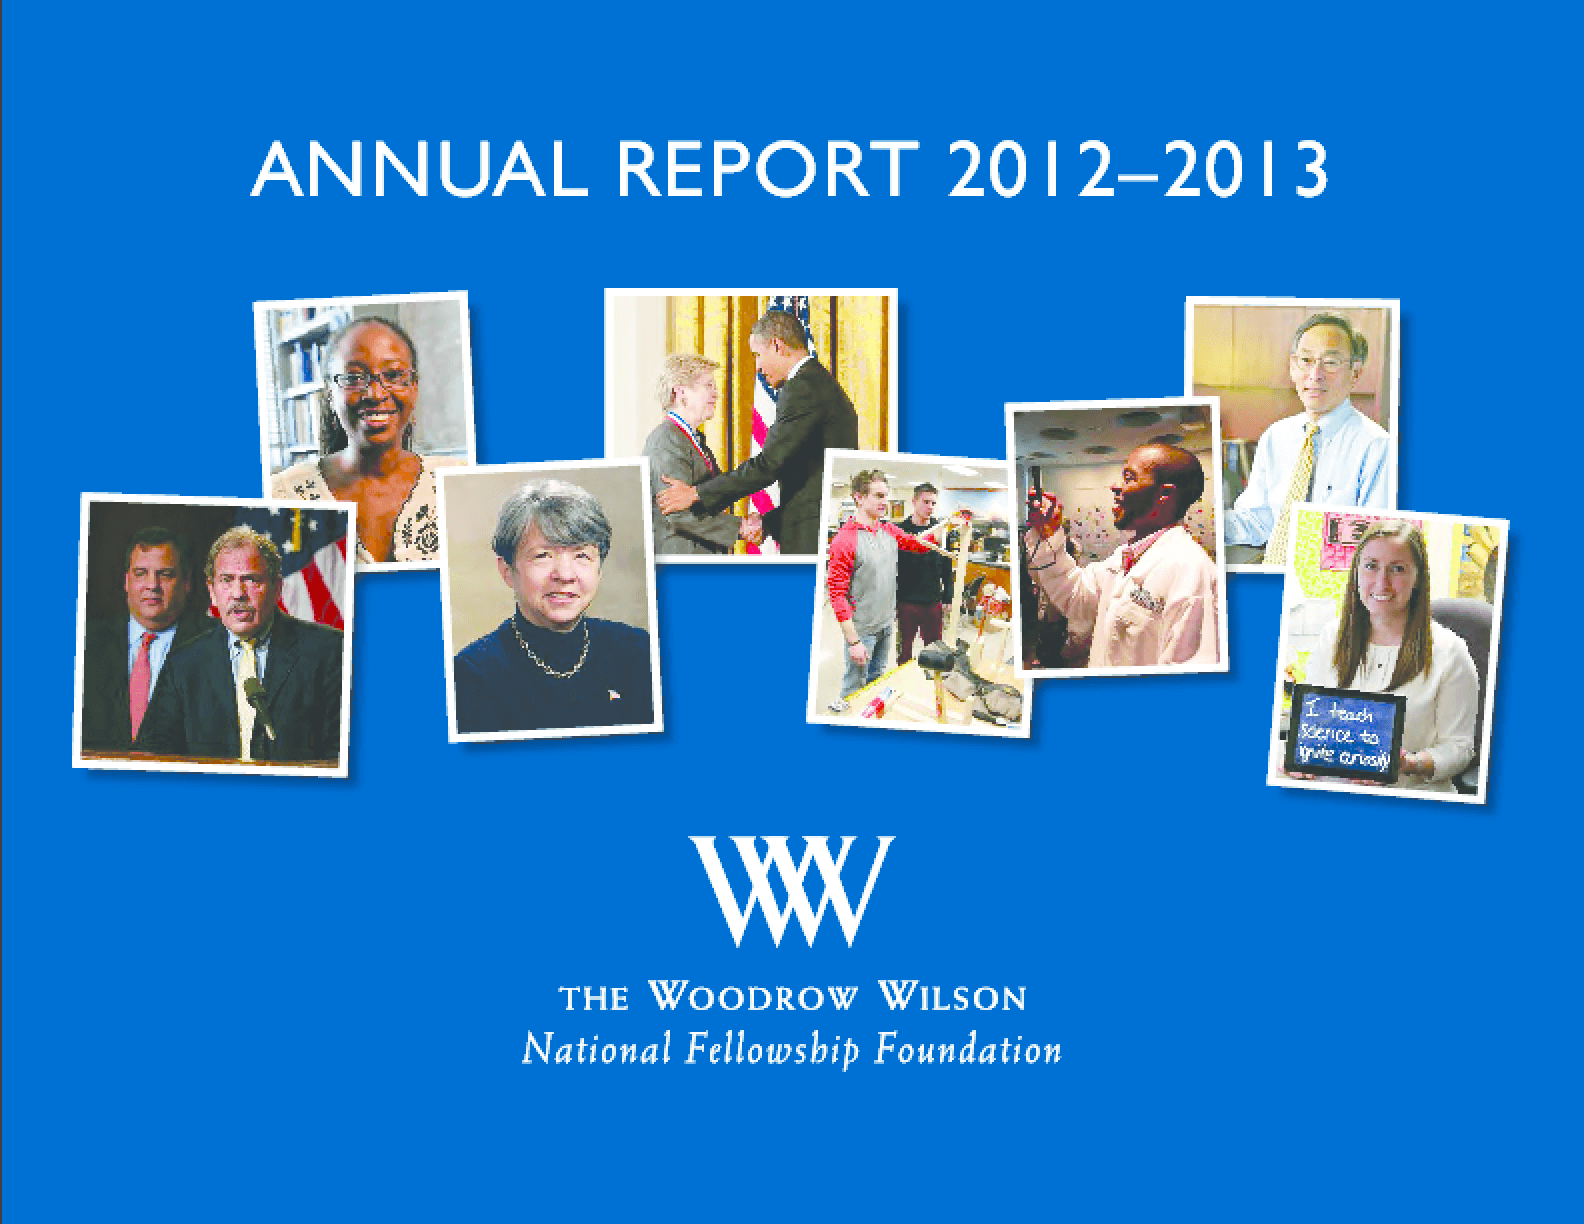 Woodrow Wilson National Fellowship Foundation Annual Report 2012-2013